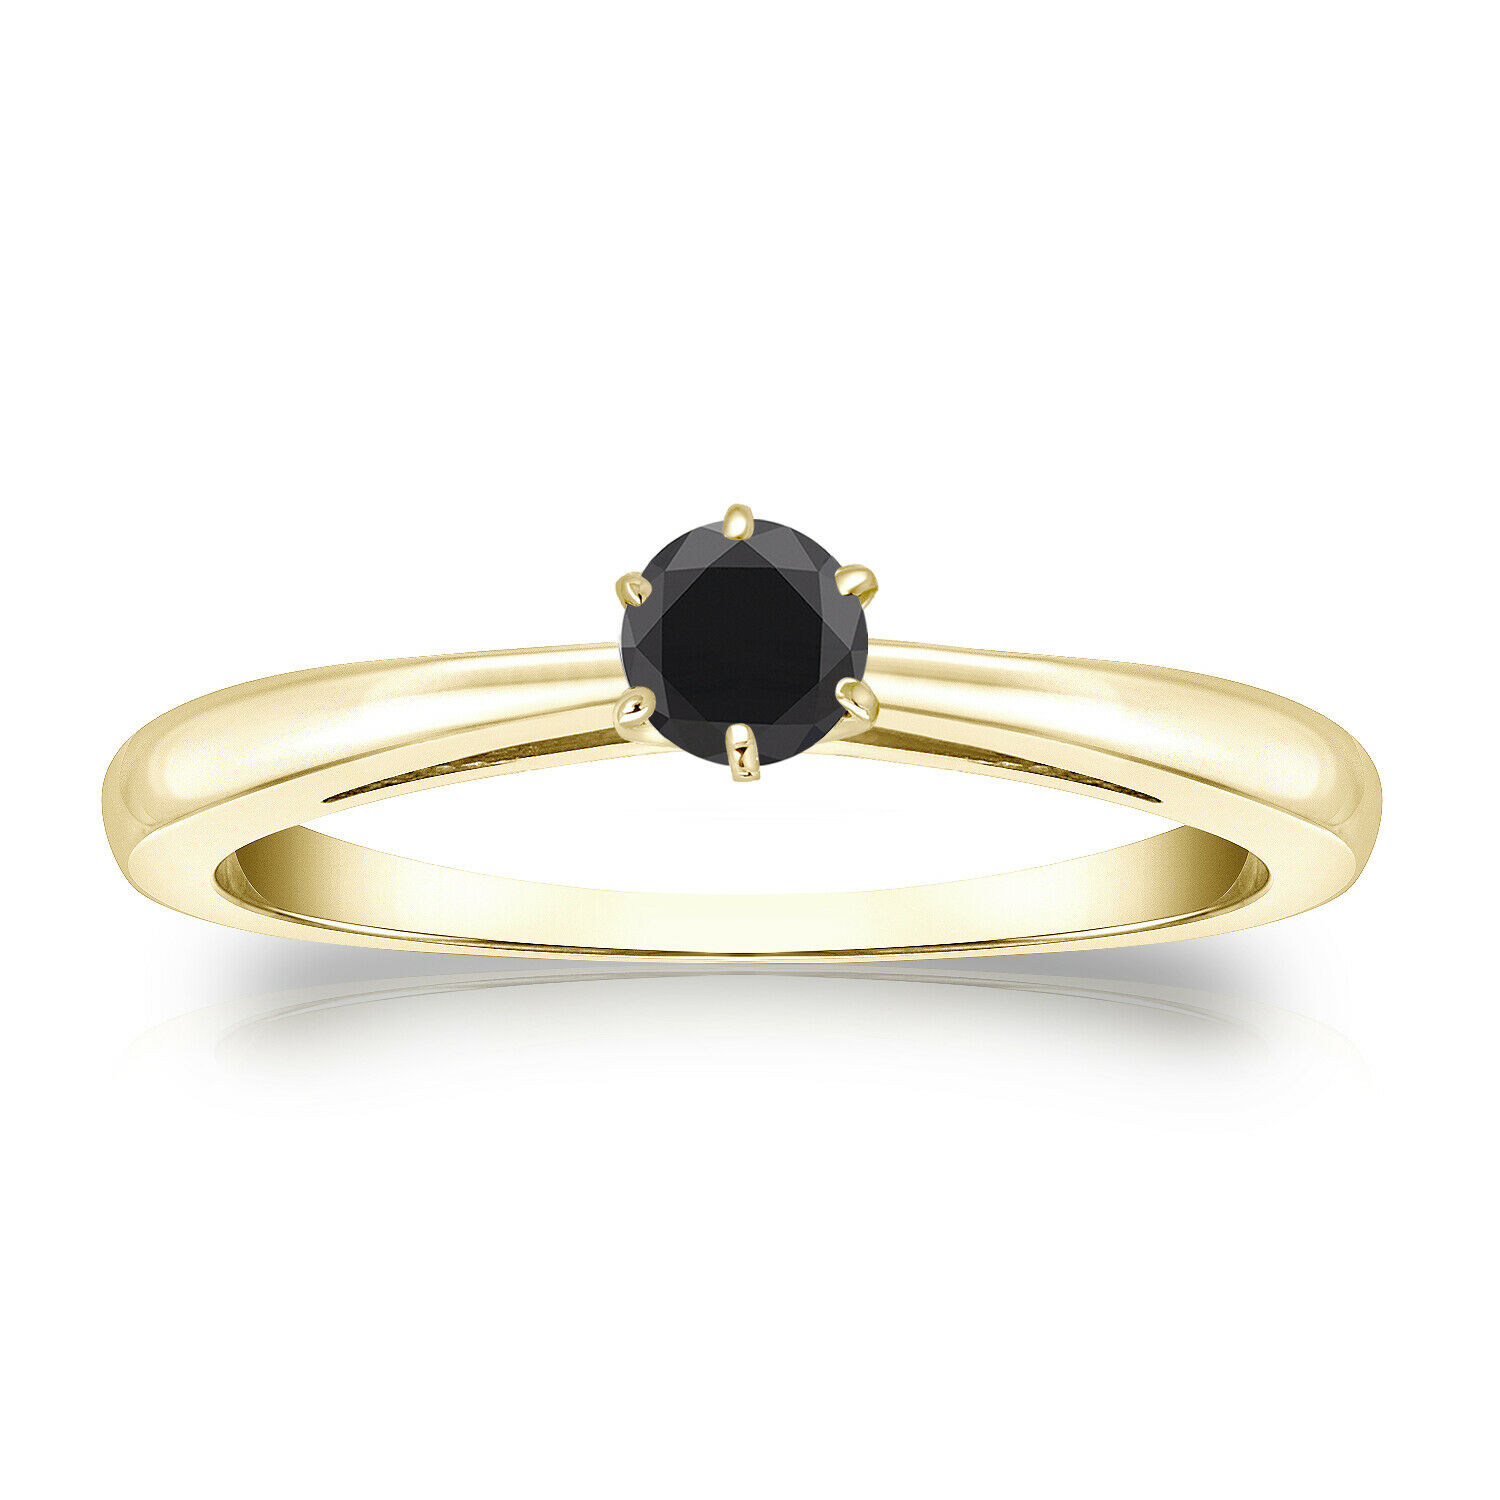 0.25 CT BLACK DIAMOND ENGAGEMENT RING 14K YELLOW GOLD